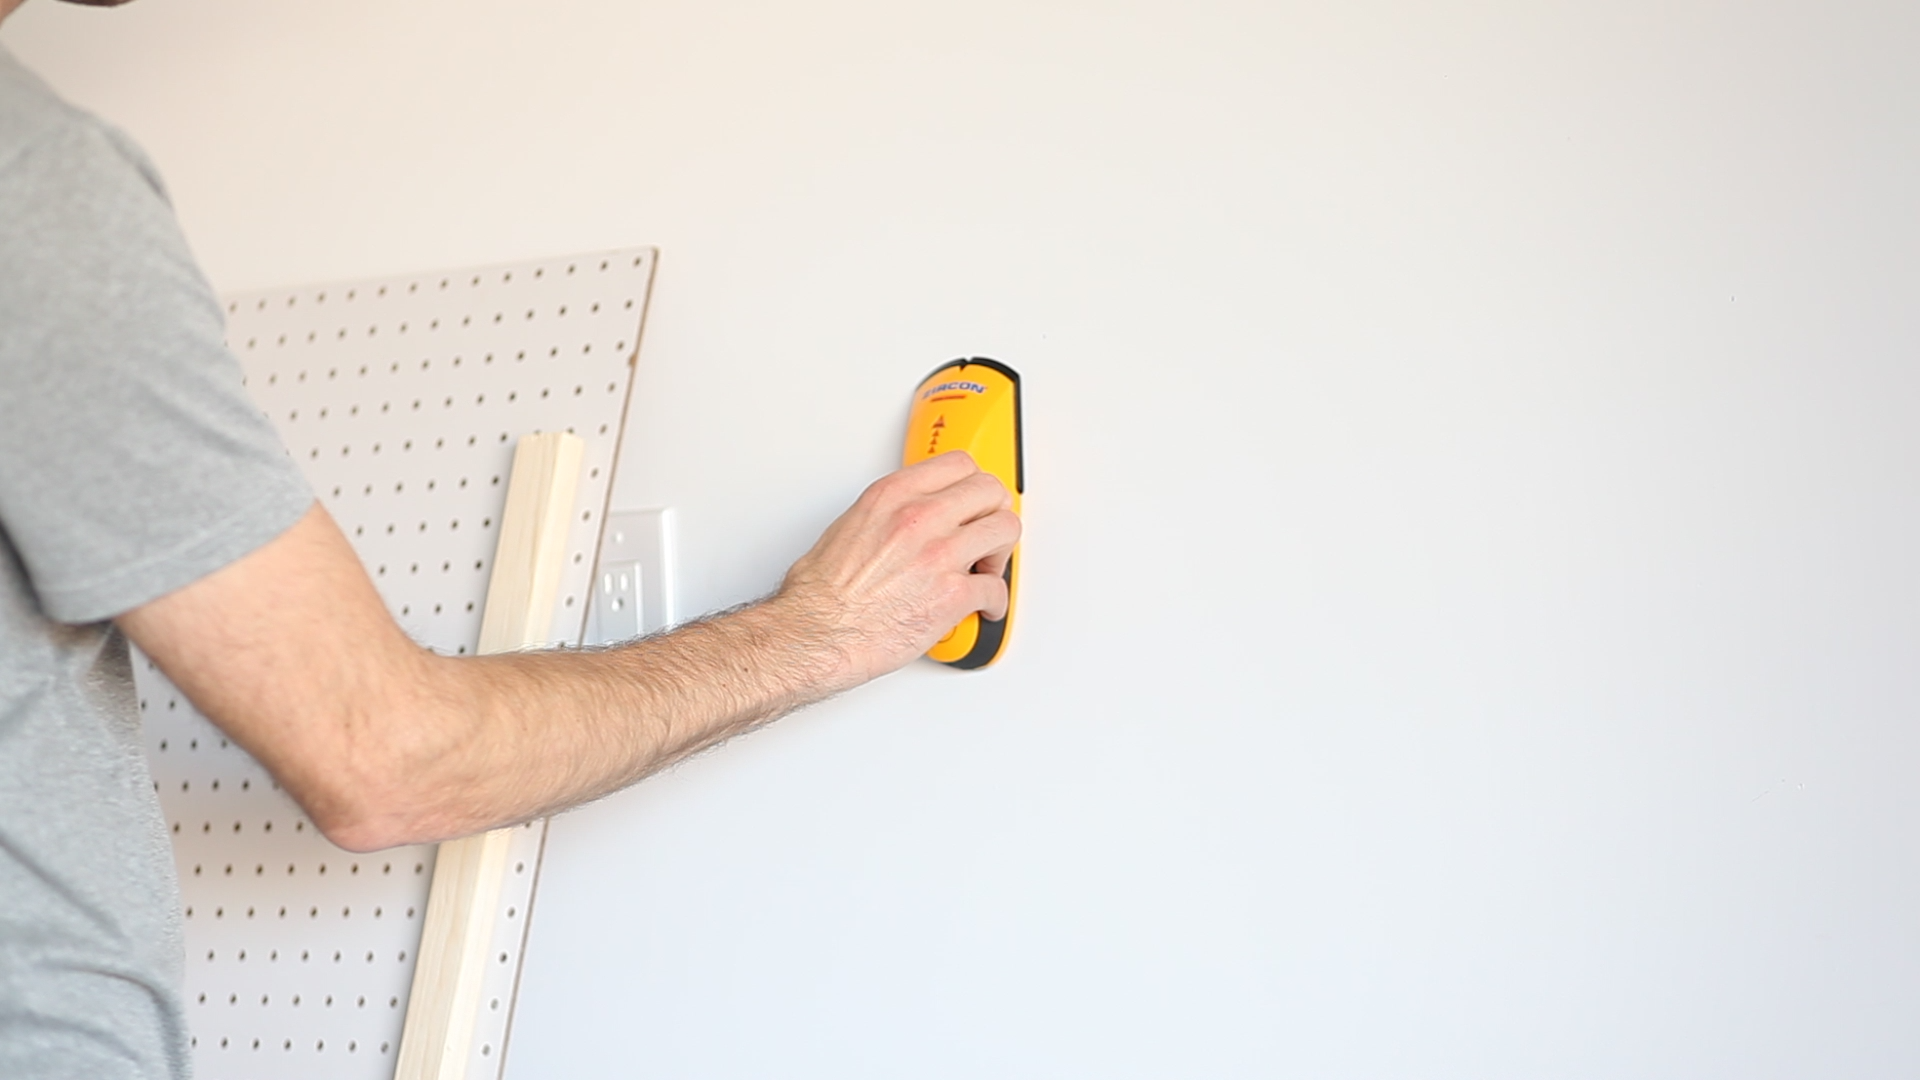 find and mark studs yellow stud finder